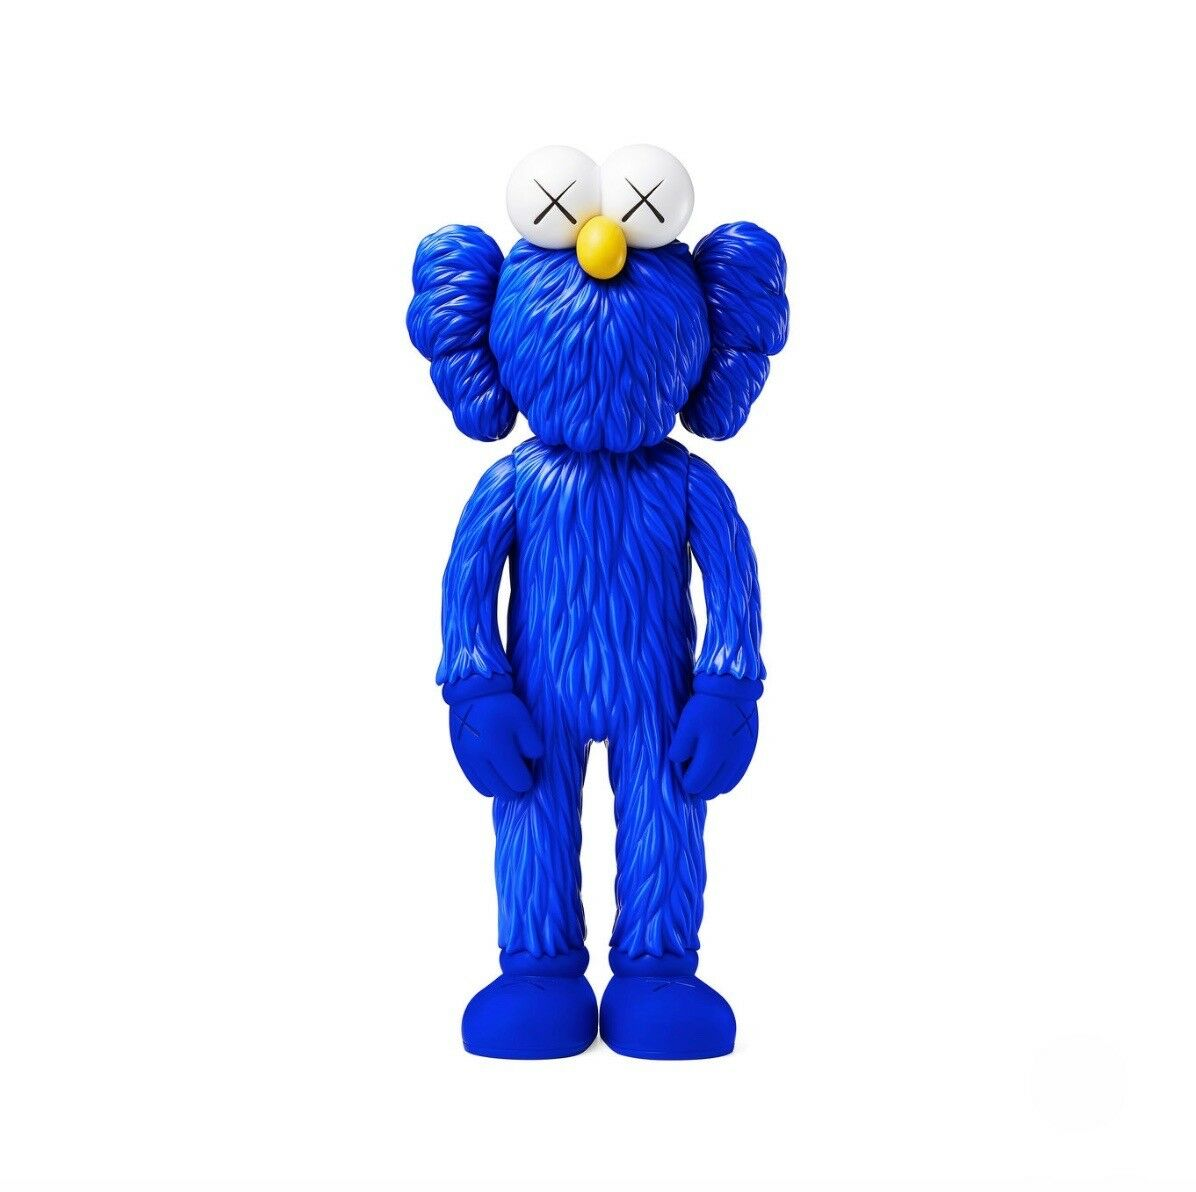 BRAND NEW RARE SOLD OUT 2017 MoMA Design Exclusive Kaws Bff Blau Vinyl Figure